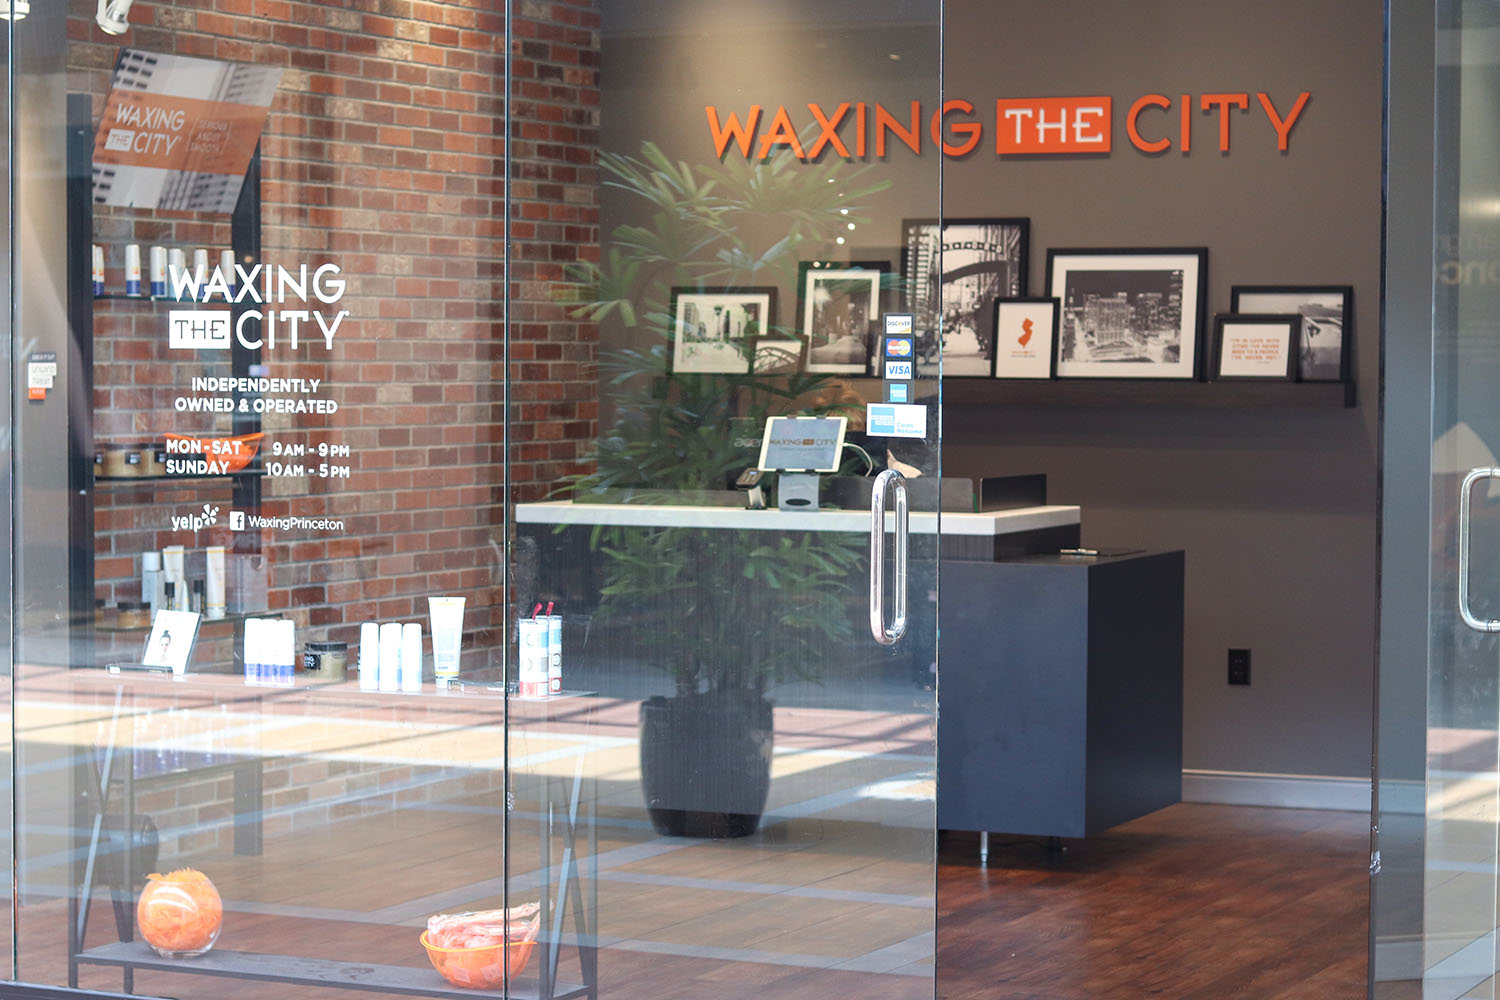 Must Do Beauty Treatments During Pregnancy   Waxing The City   Princeton NJ Lobby